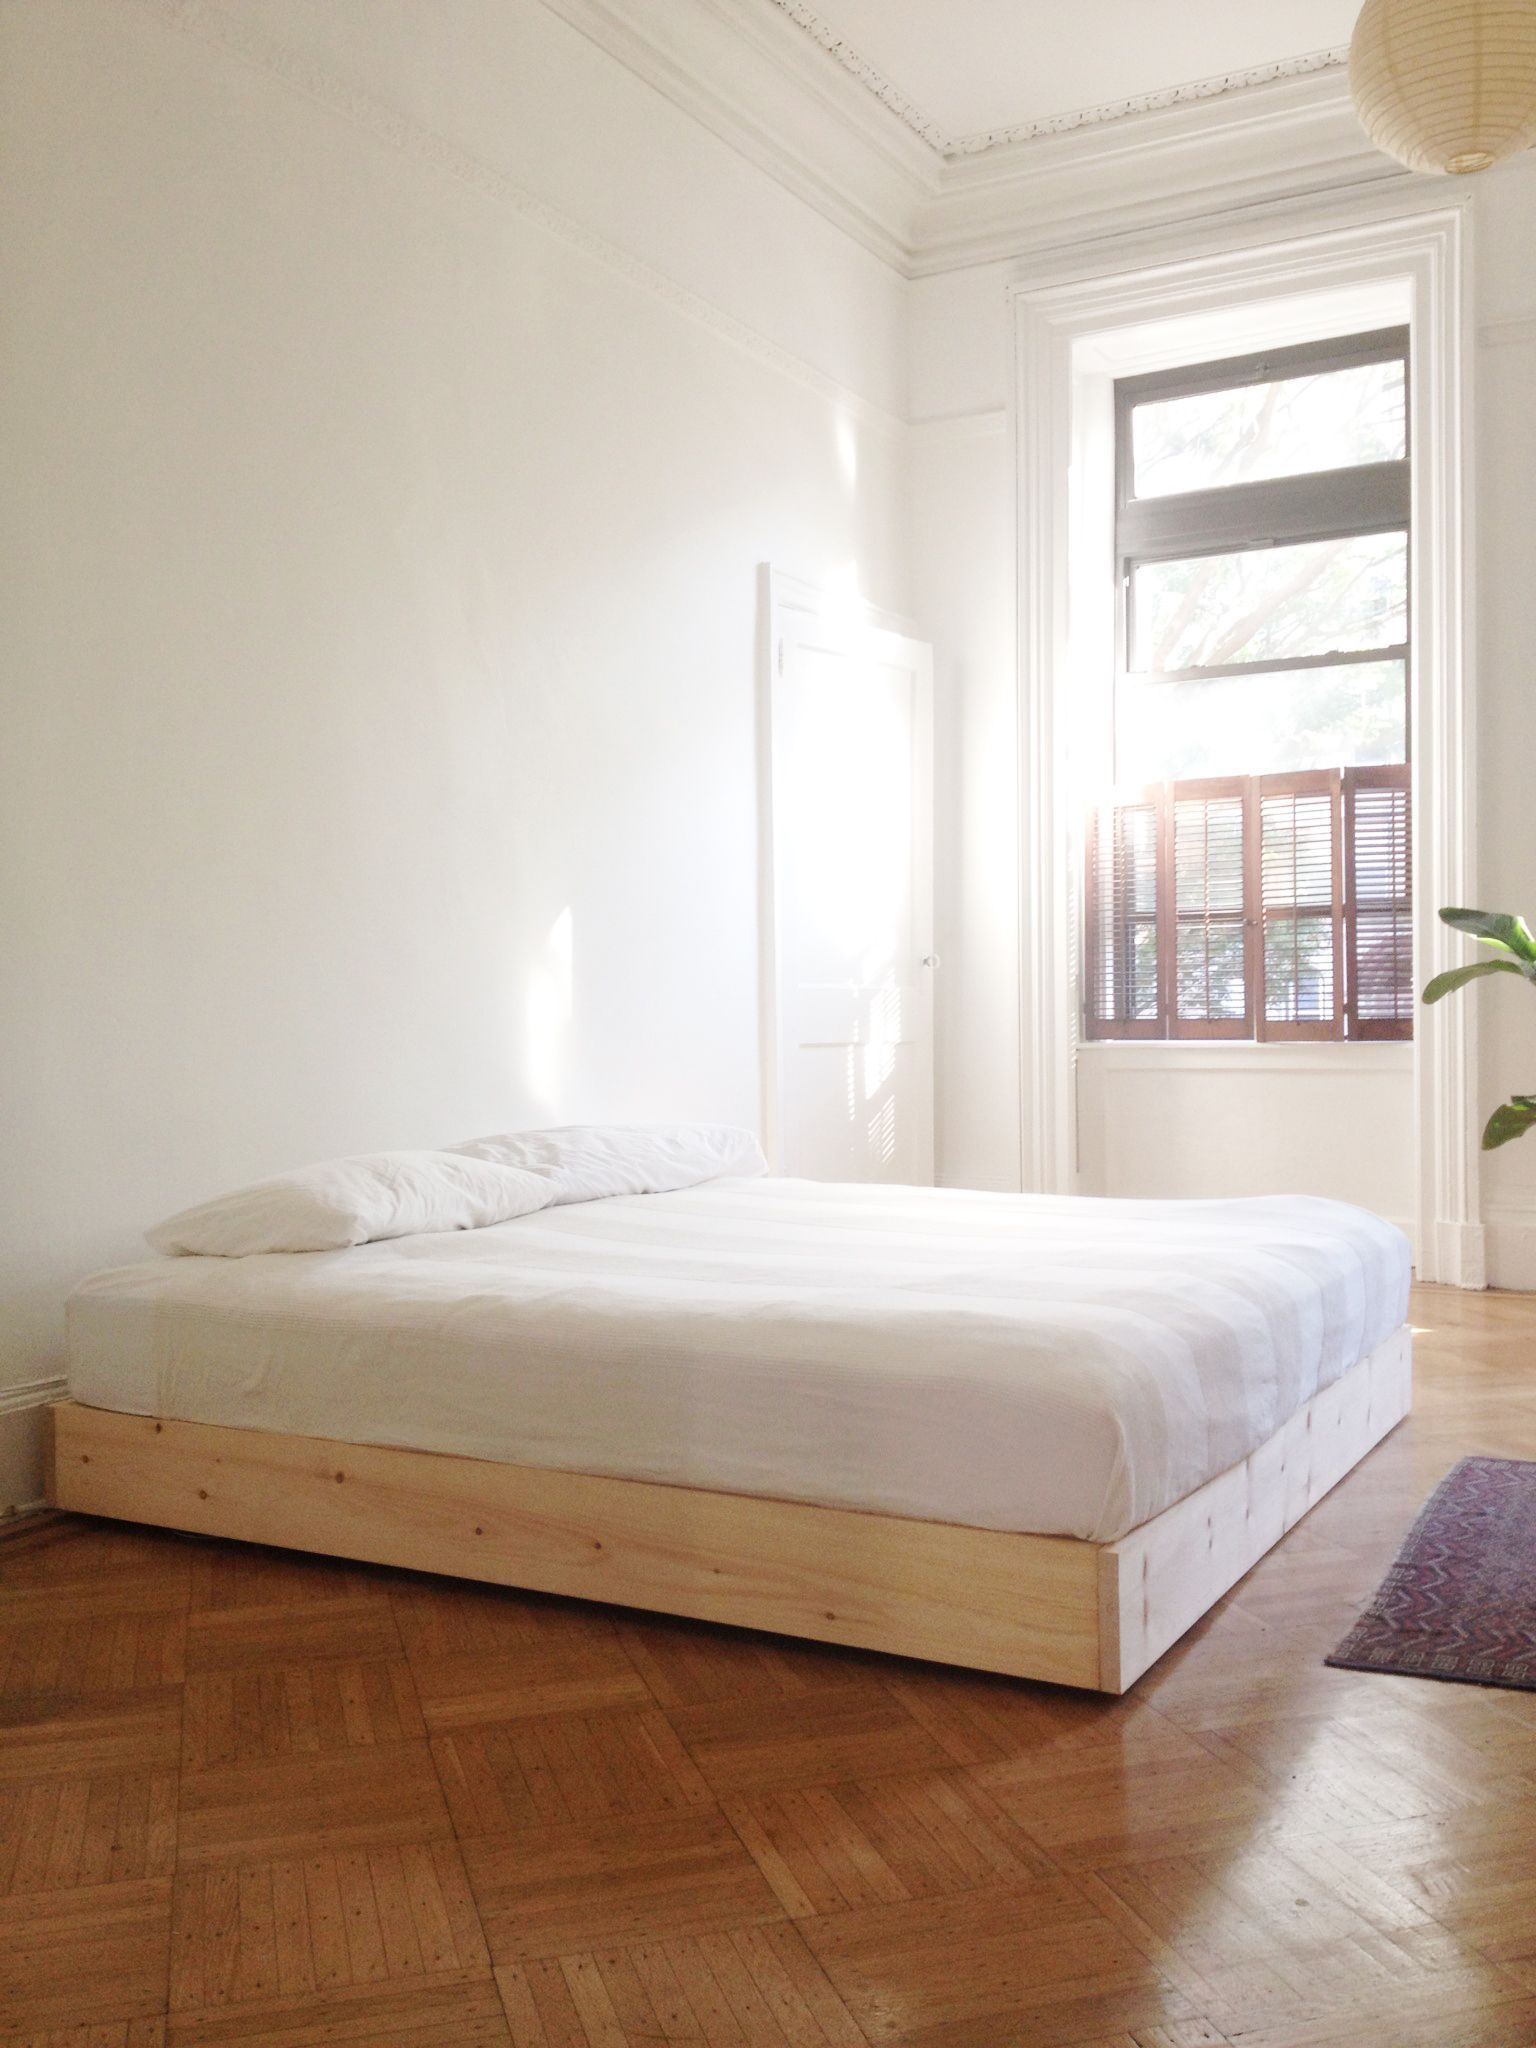 Best DIY Projects 63 Easy DIY Platform Beds That Anyone Can Build 3  Onechitecture Best DIY Projects 63 Easy DIY Platform Beds That Anyone Can Build 3  Onechitecture